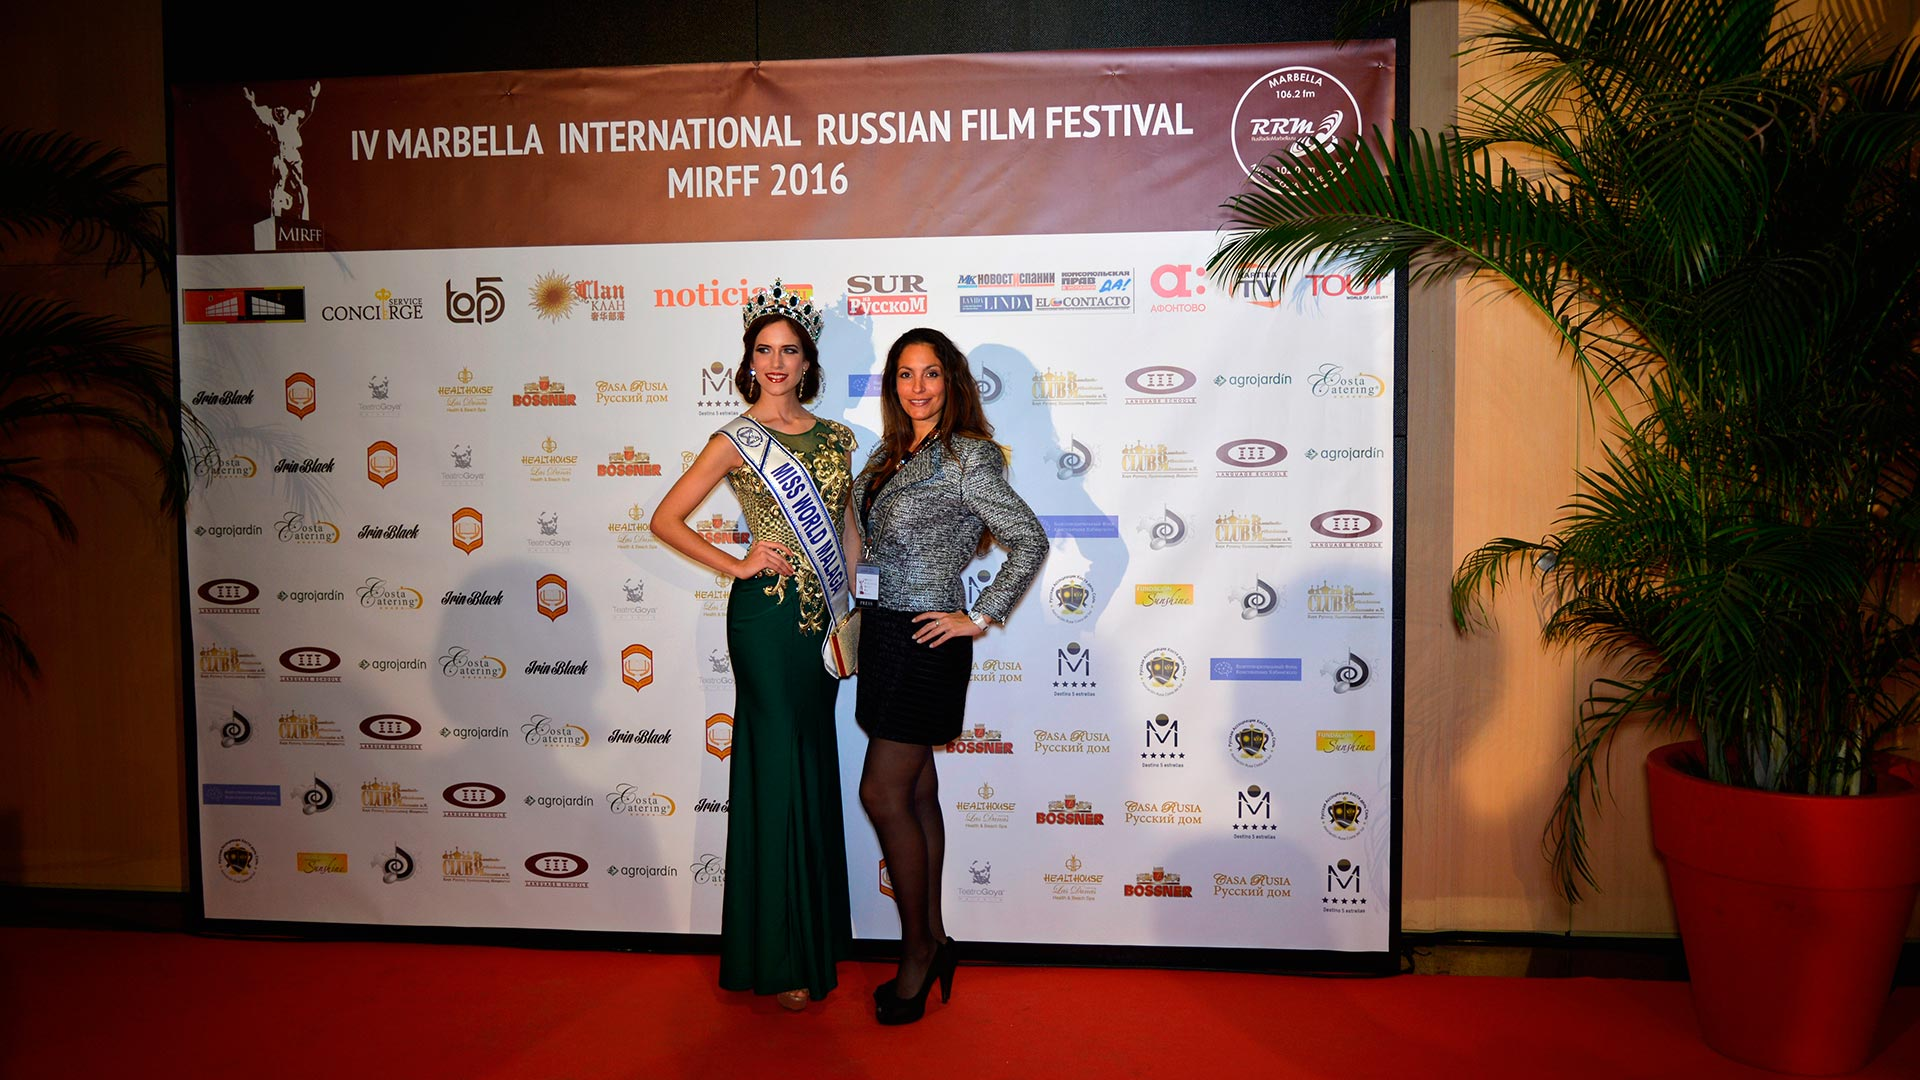 Ariana Soffici & Miss World Spain Malaga - MIRFF 2016 www.arianasoffici.com